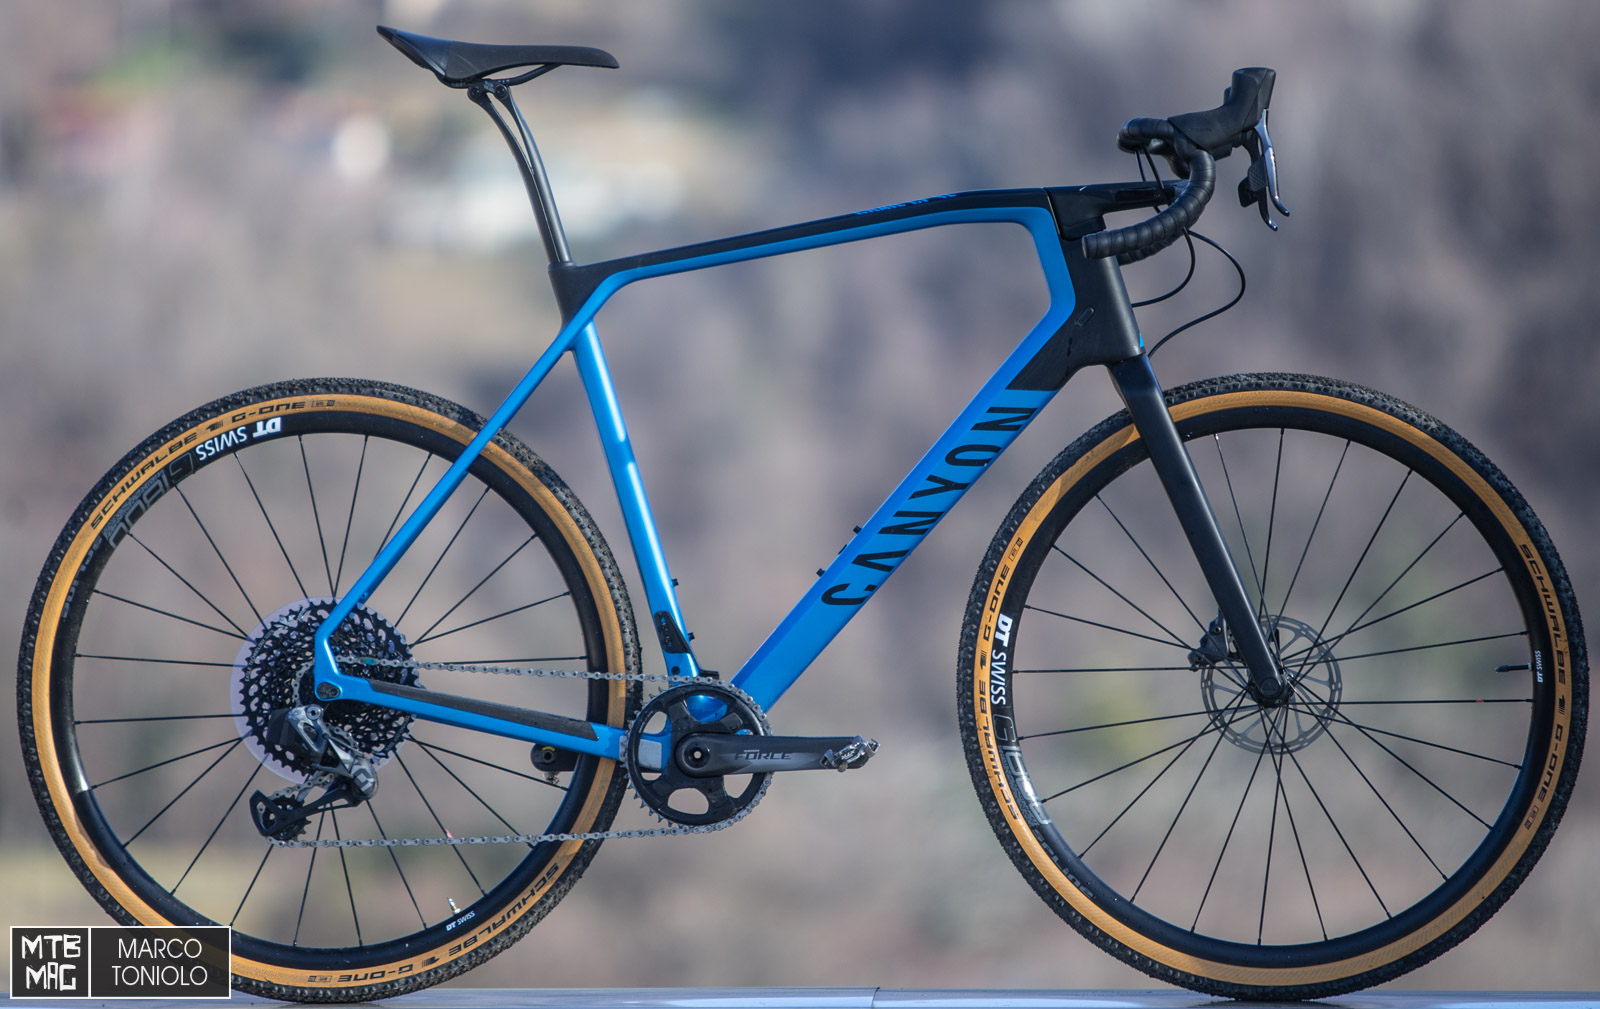 [Test] Canyon Grail CF SL 8.0 eTap